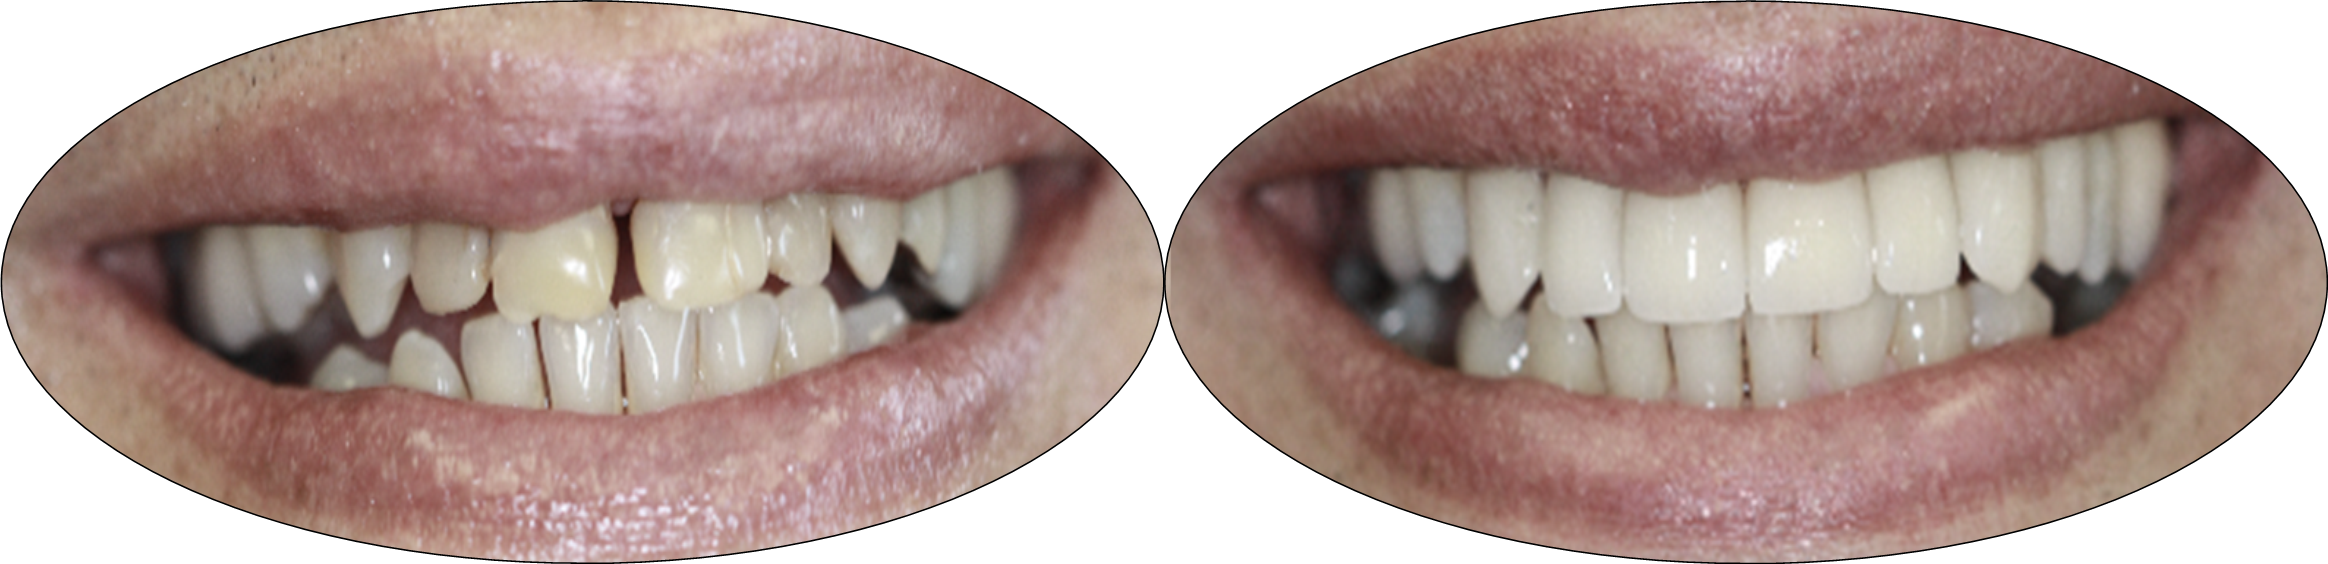 Before and after images of Porcelain Crowns and Porcelain Veneers